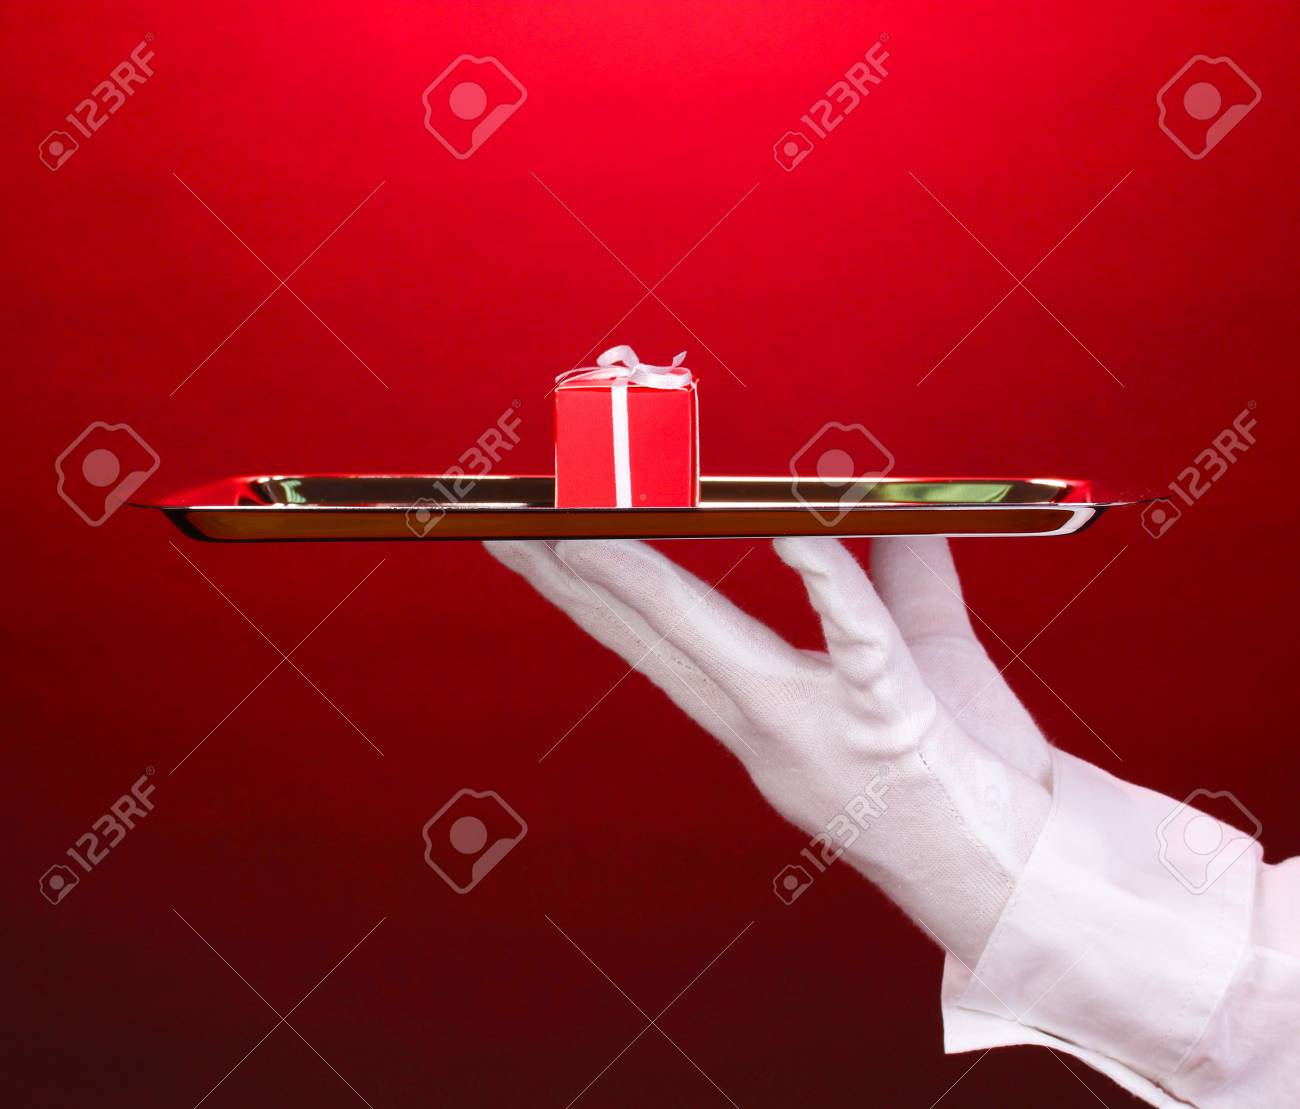 Hand in glove holding silver tray with giftbox on red background Stock Photo - 14539682